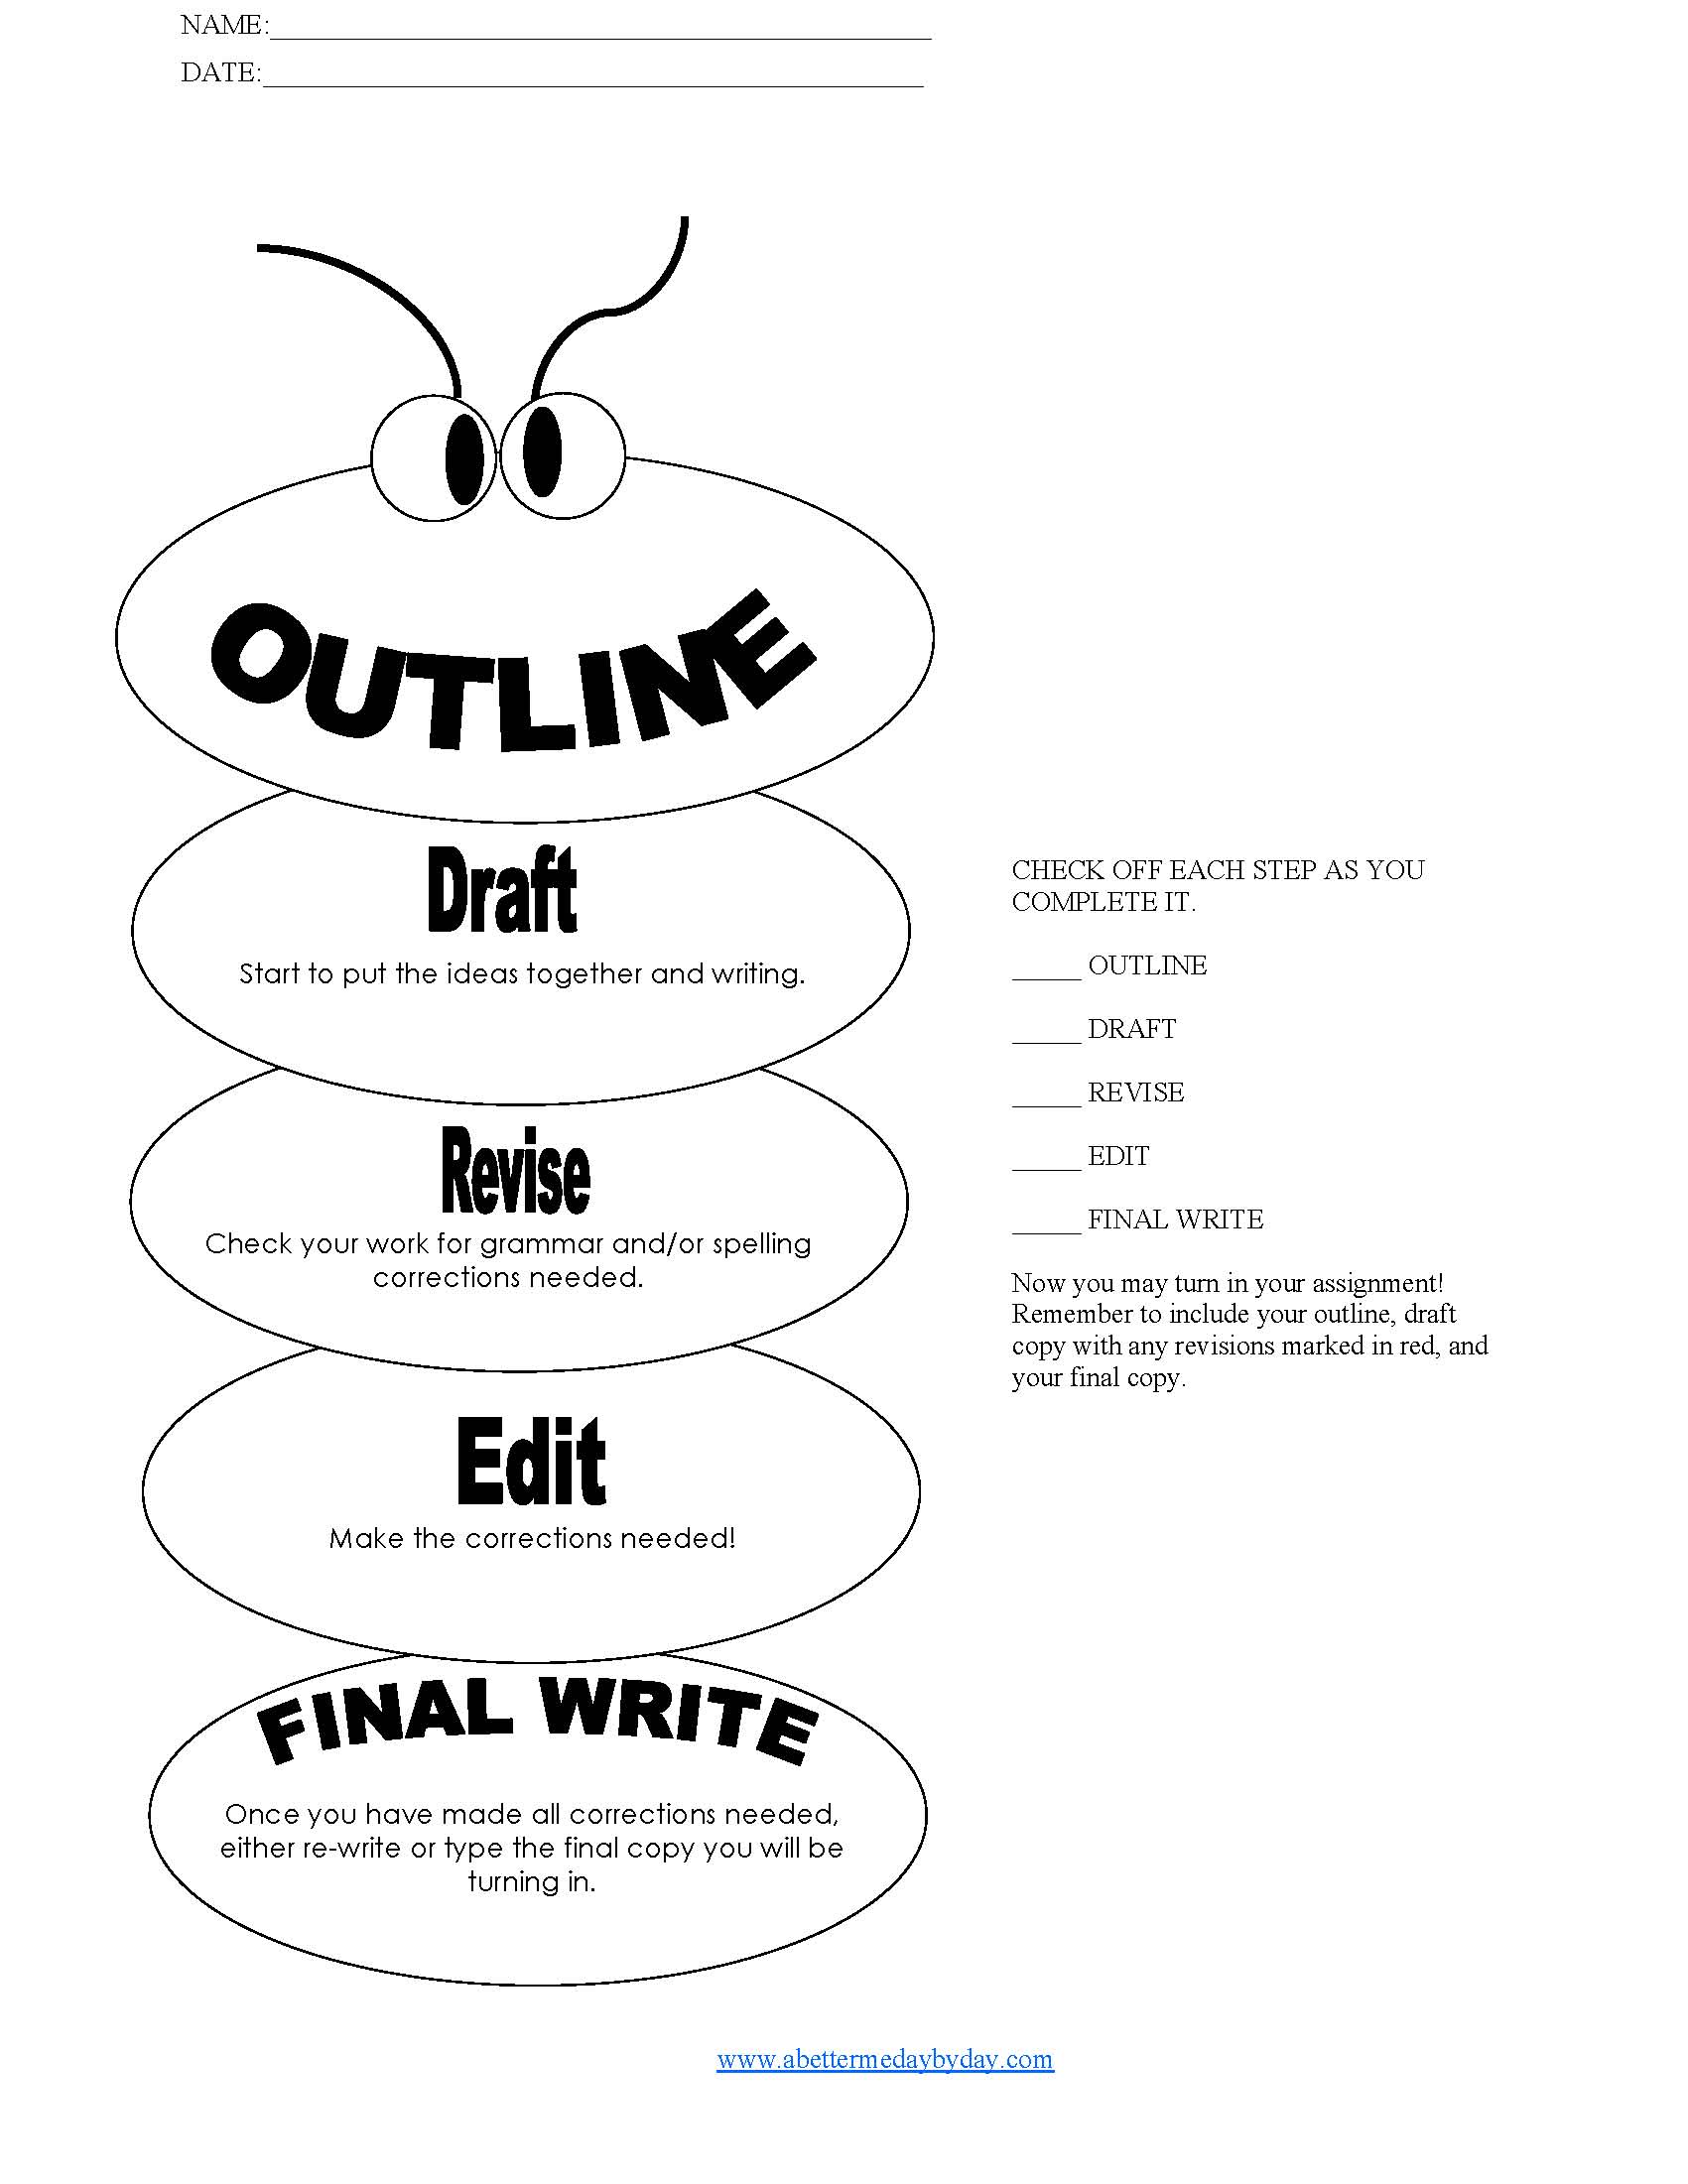 Essay Writing: Types of Essays